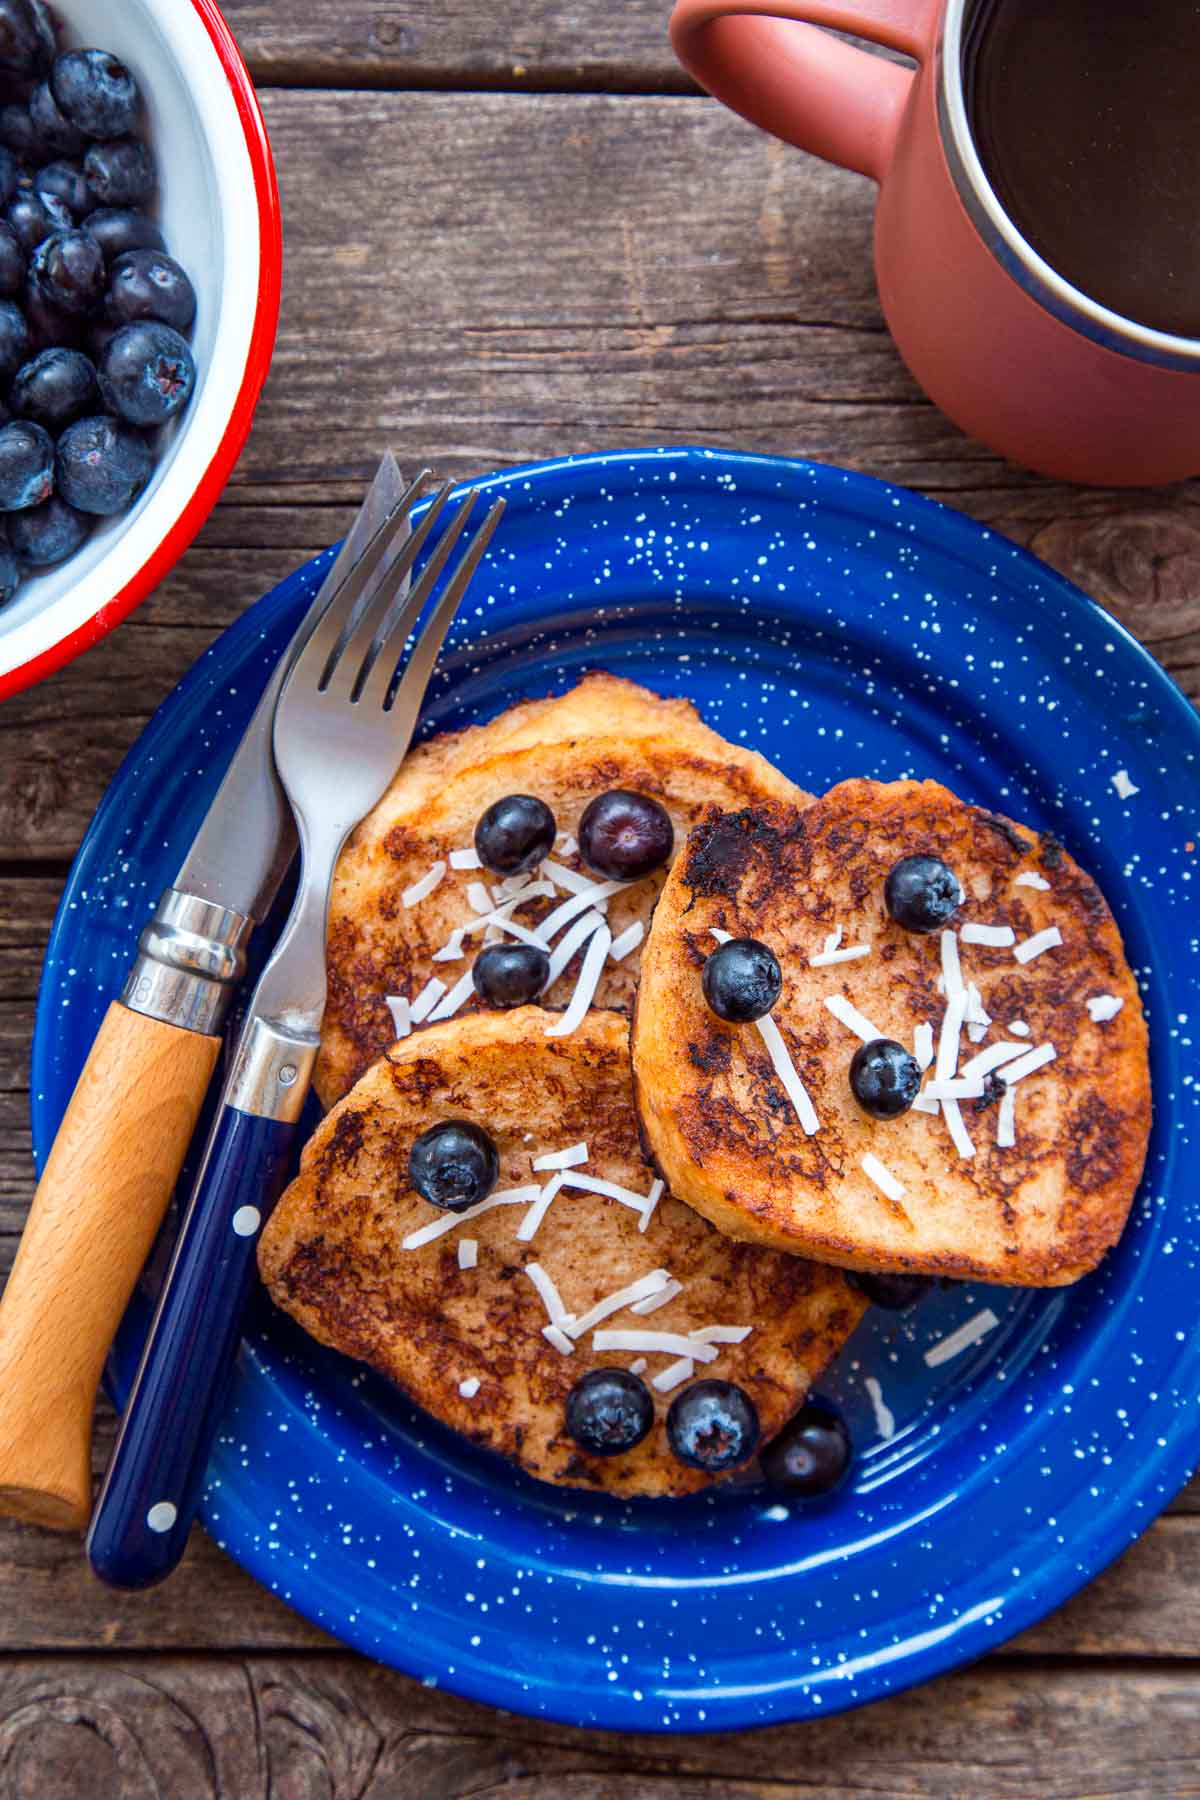 Three slices of French toast with blueberries on a blue plate